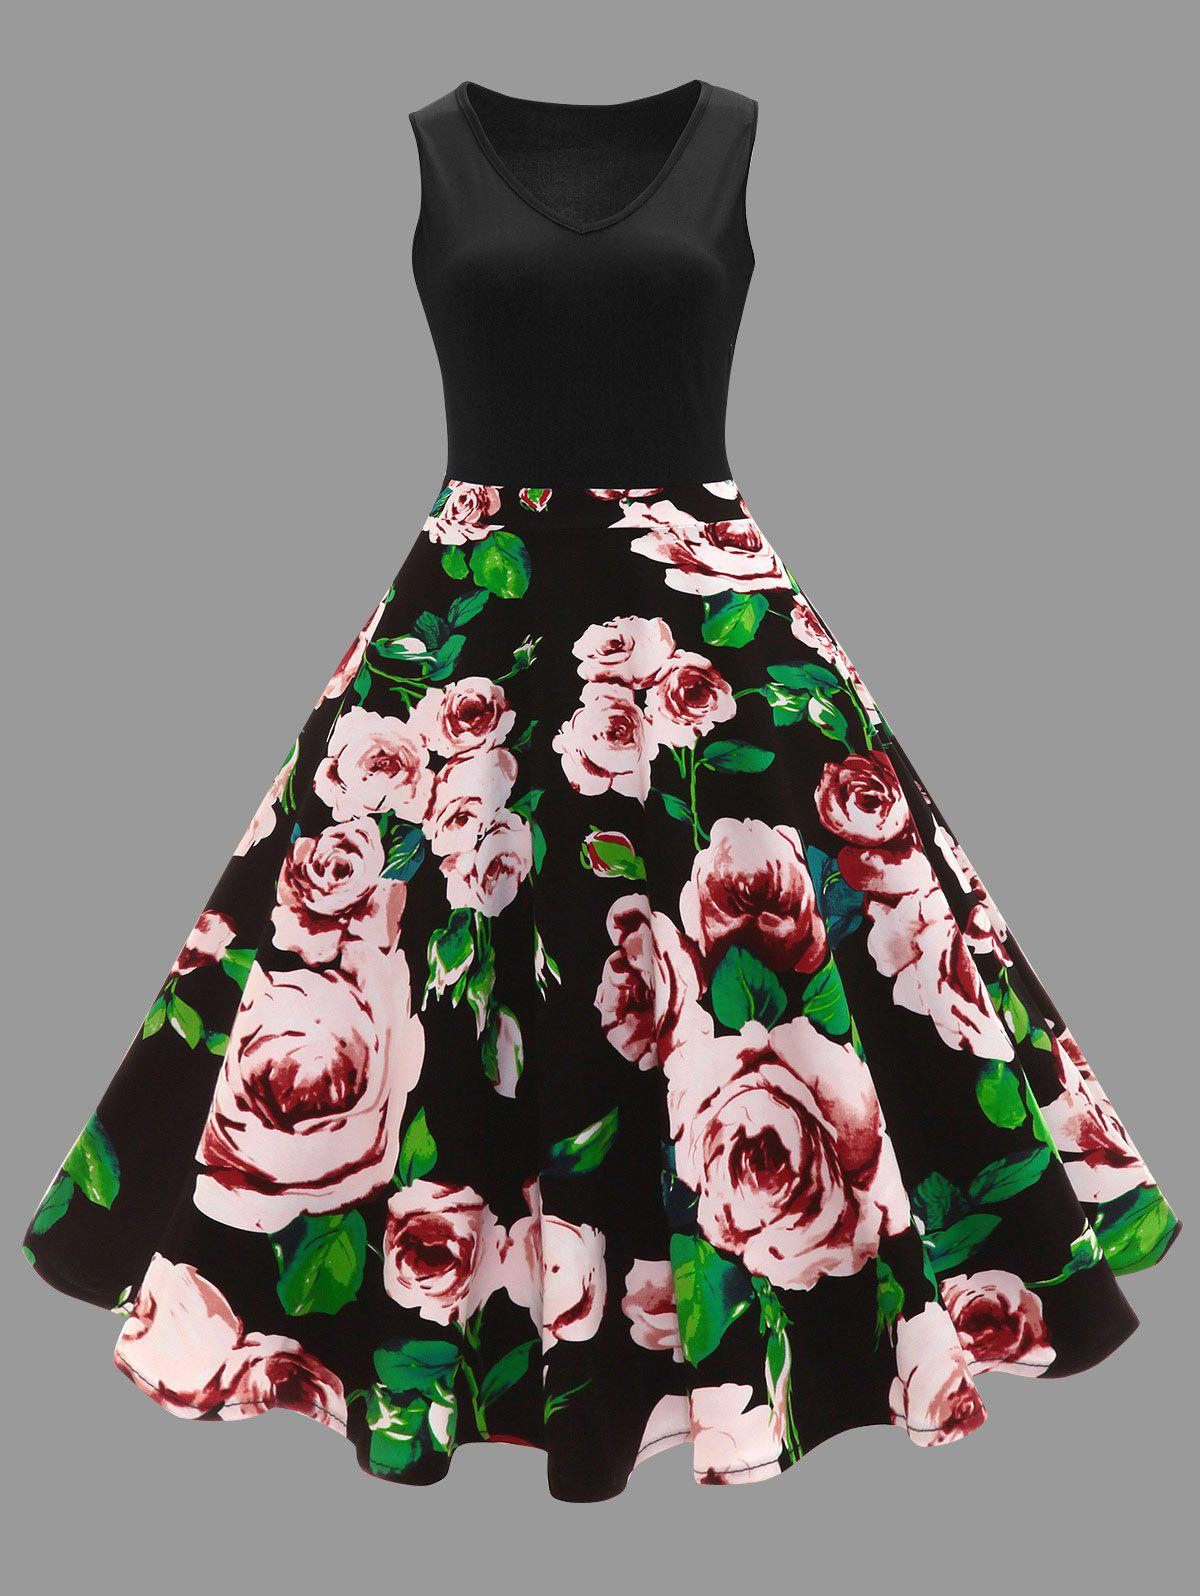 Plus Size Floral Printed Vintage Midi Flare DressWOMEN<br><br>Size: 2XL; Color: BLACK; Style: Vintage; Material: Cotton,Cotton Blend,Polyester; Silhouette: Ball Gown; Dresses Length: Mid-Calf; Neckline: V-Neck; Sleeve Length: Sleeveless; Waist: High Waisted; Embellishment: Vintage; Pattern Type: Floral,Print; With Belt: No; Season: Spring,Summer; Weight: 0.3500kg; Package Contents: 1 x Dress;